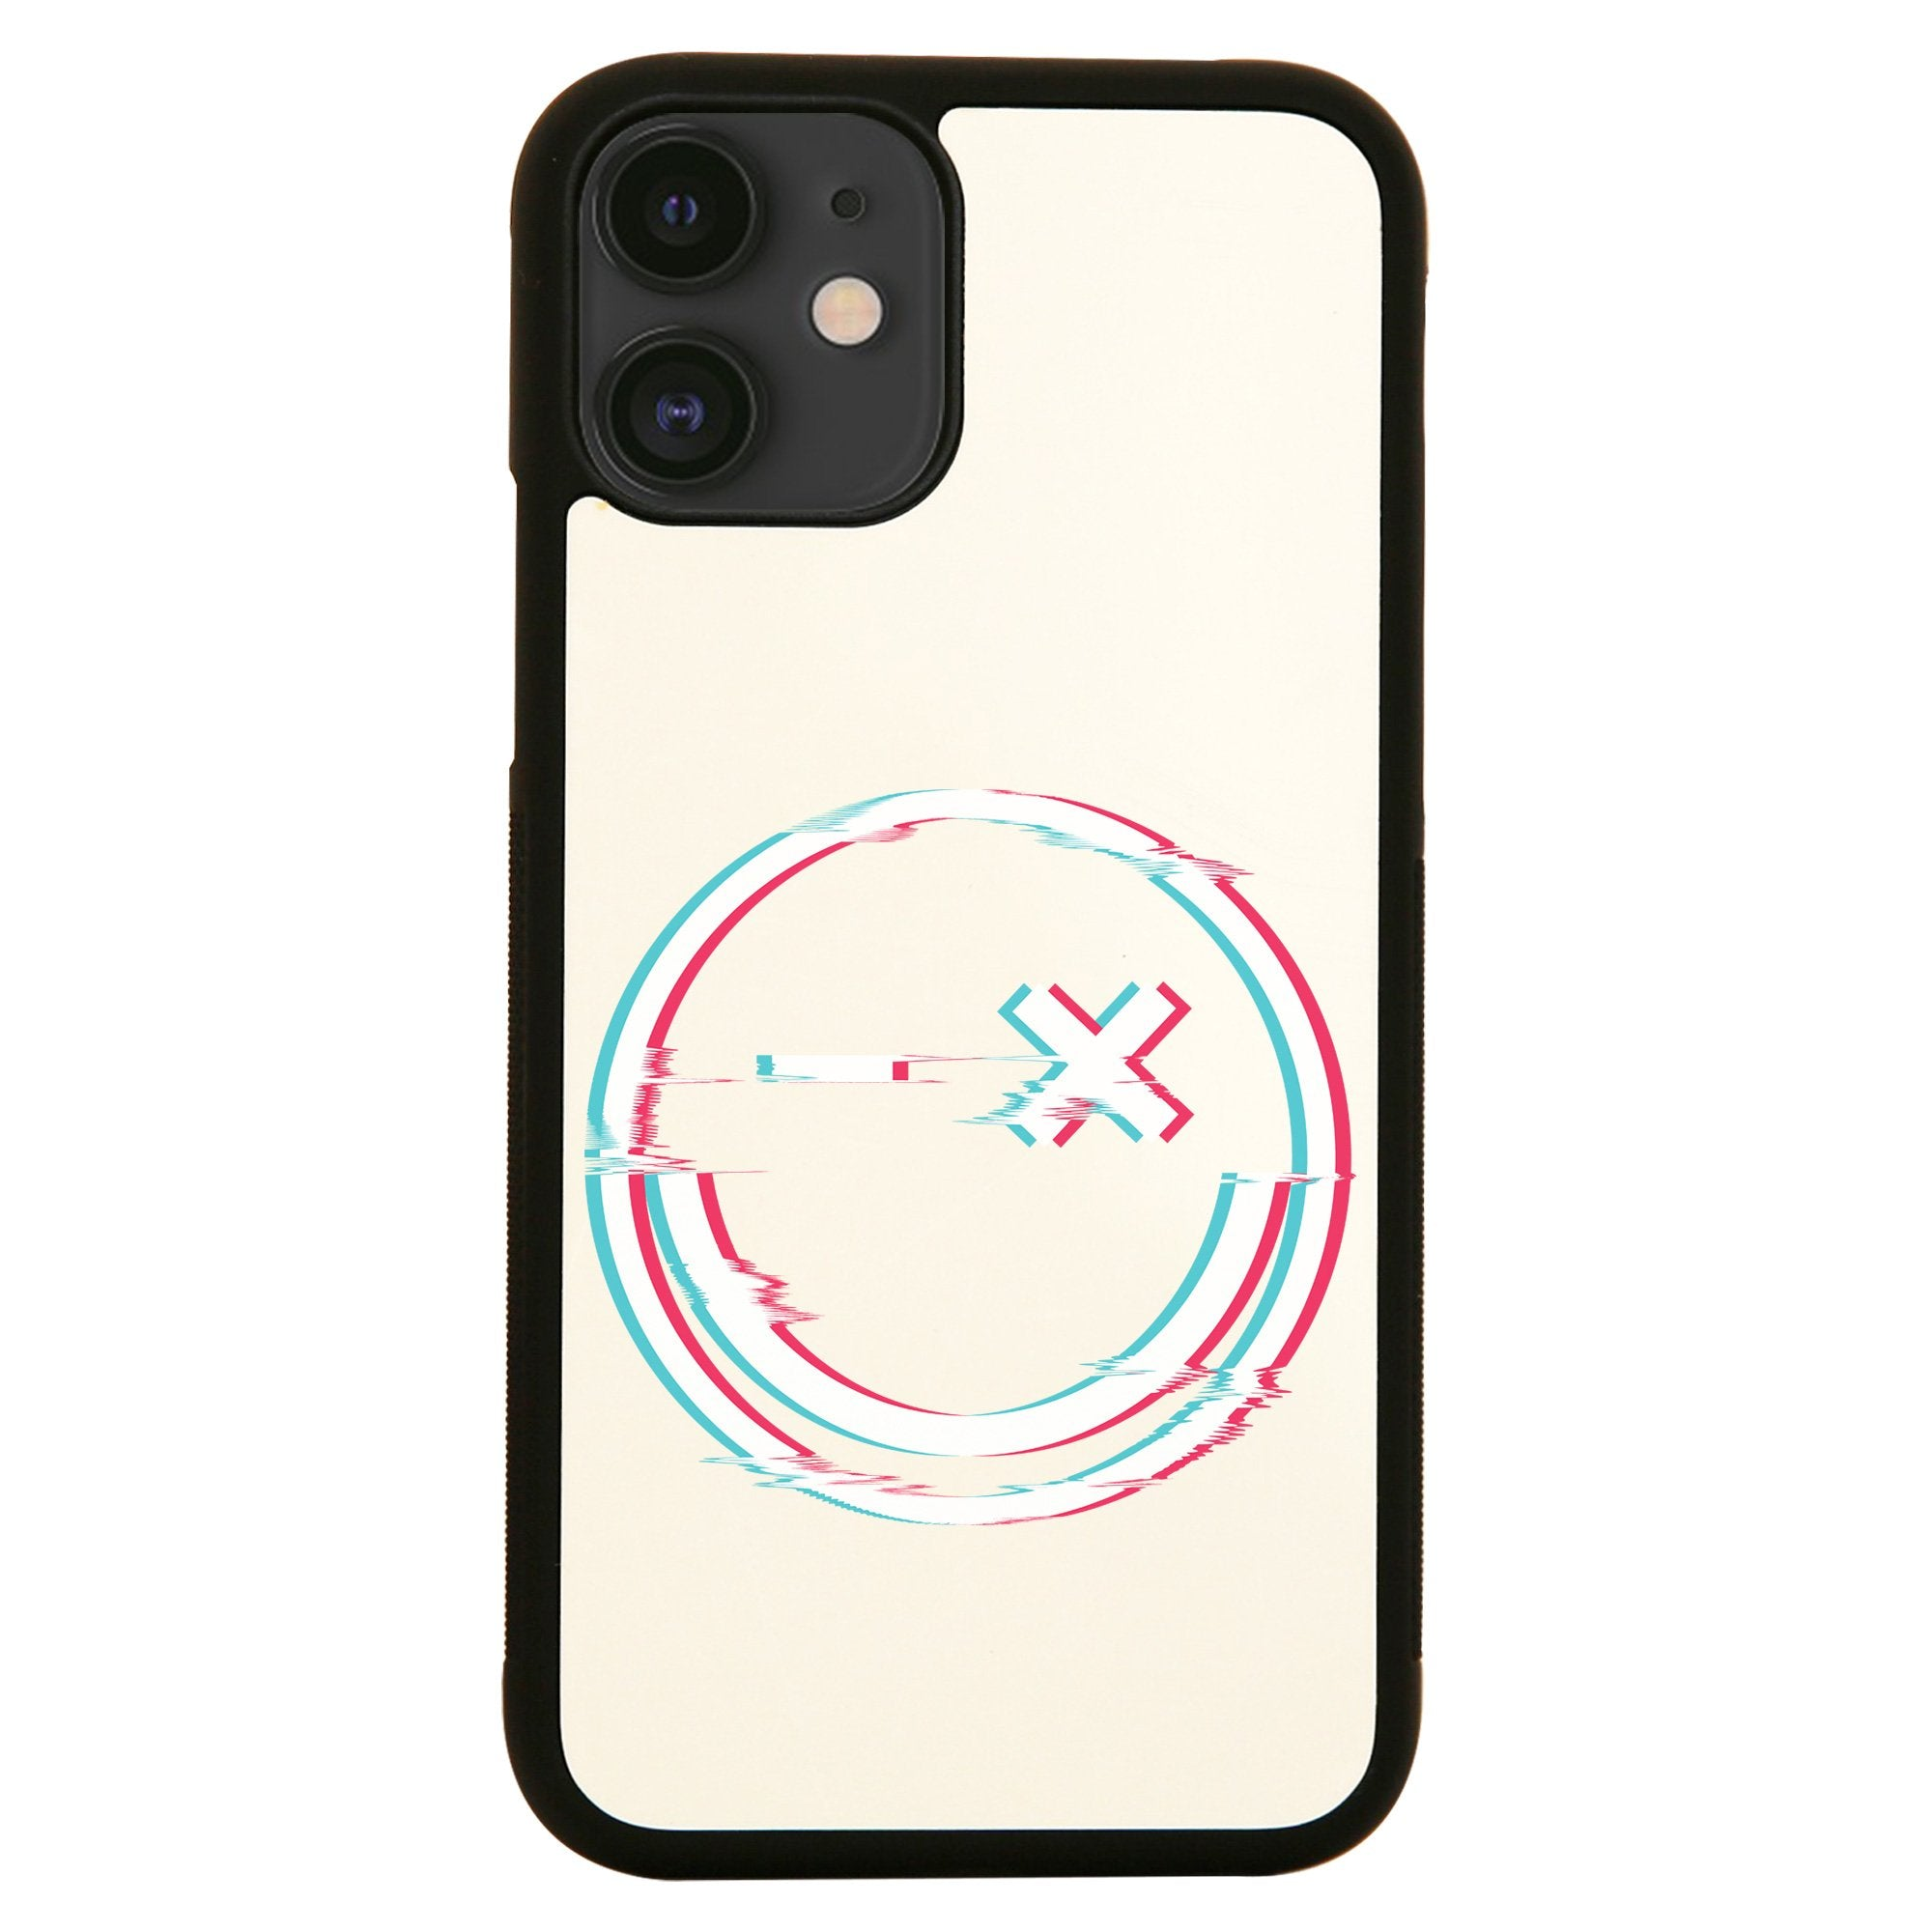 Smile glitch iPhone case